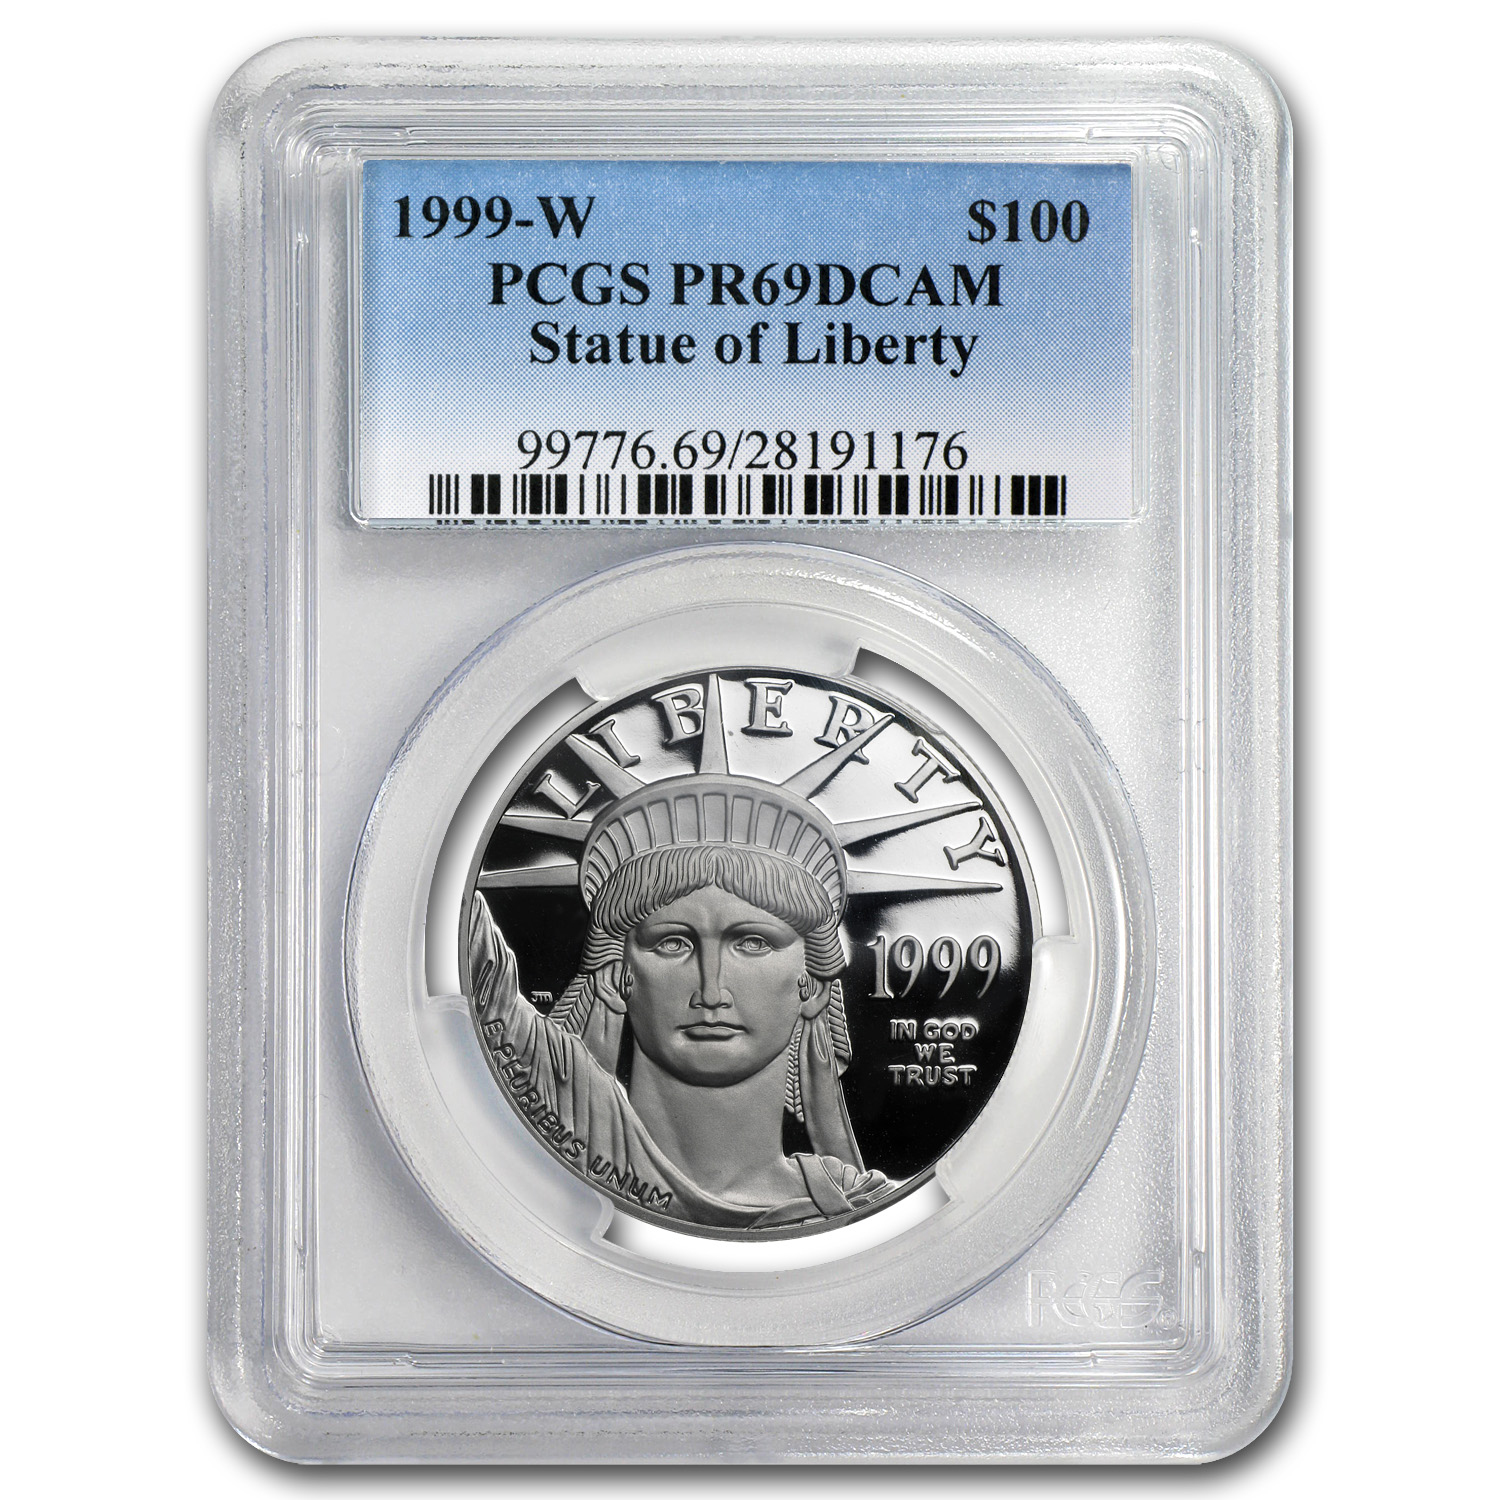 1999-W 1 oz Proof Platinum American Eagle PR-69 PCGS